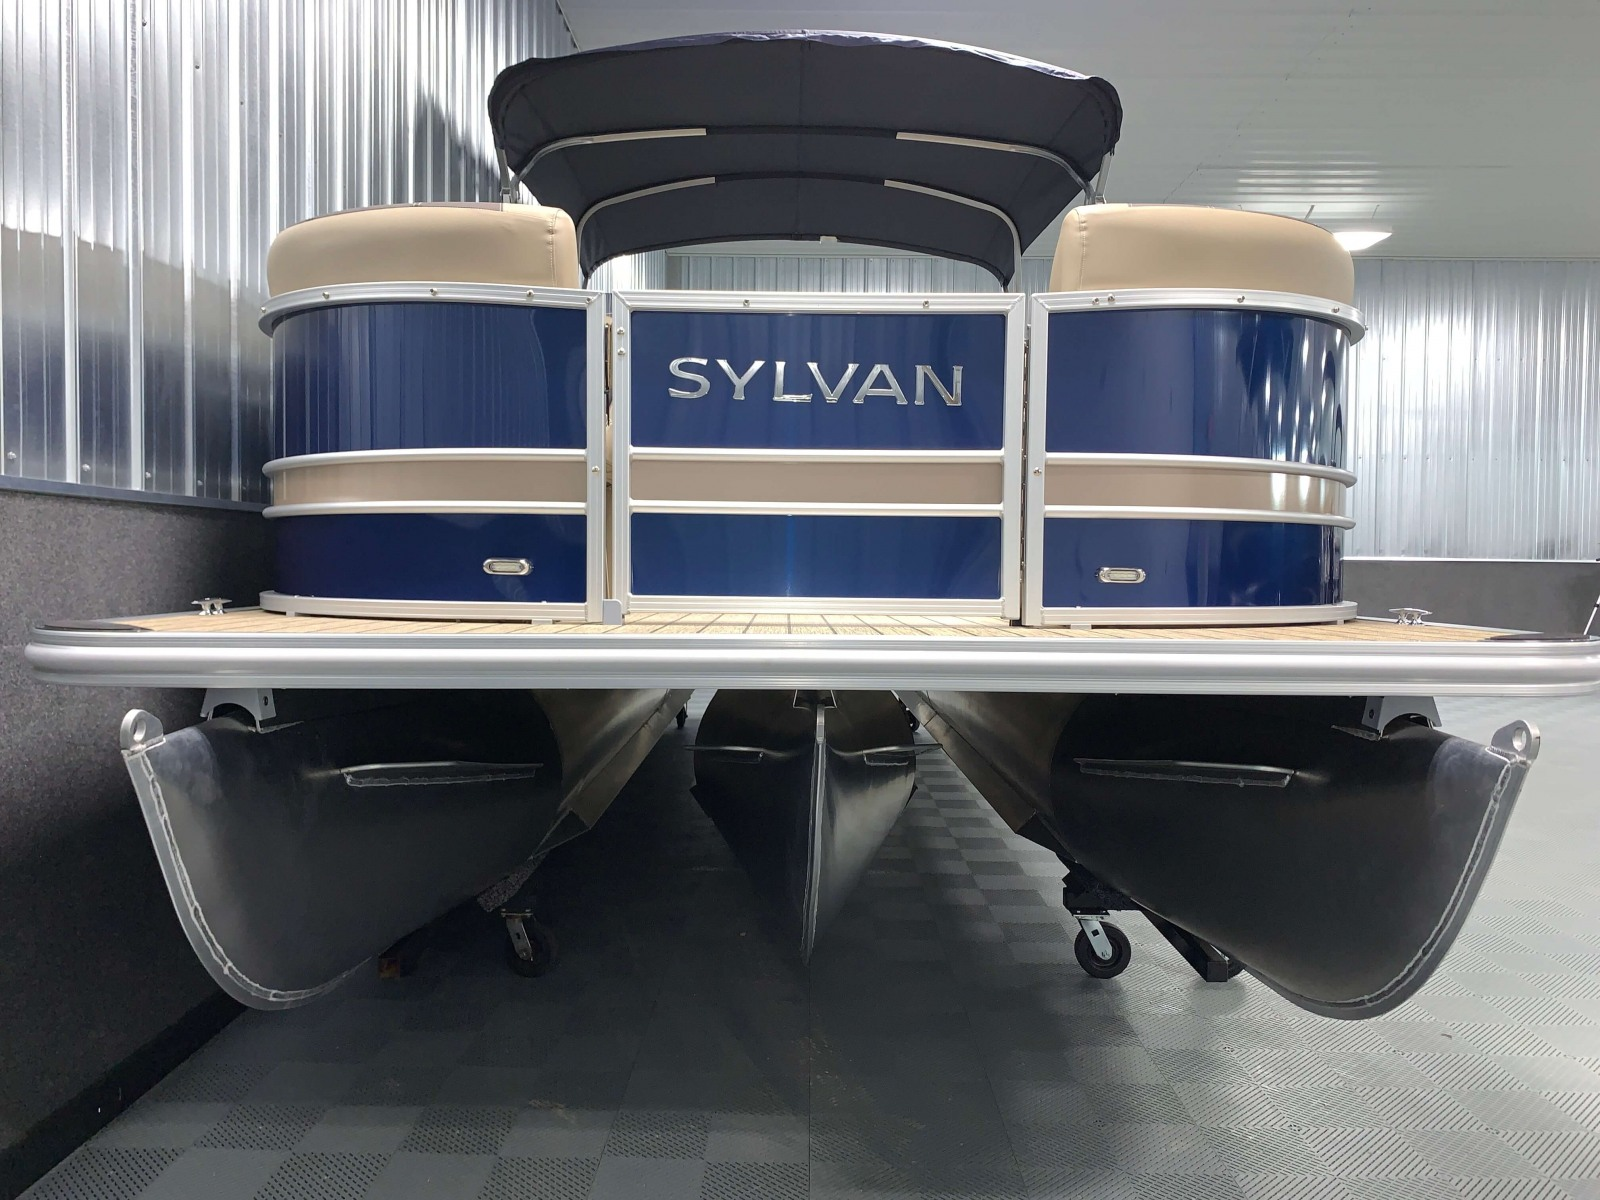 SPX Performance Package of the 2021 Sylvan L3 LZ Tritoon Boat